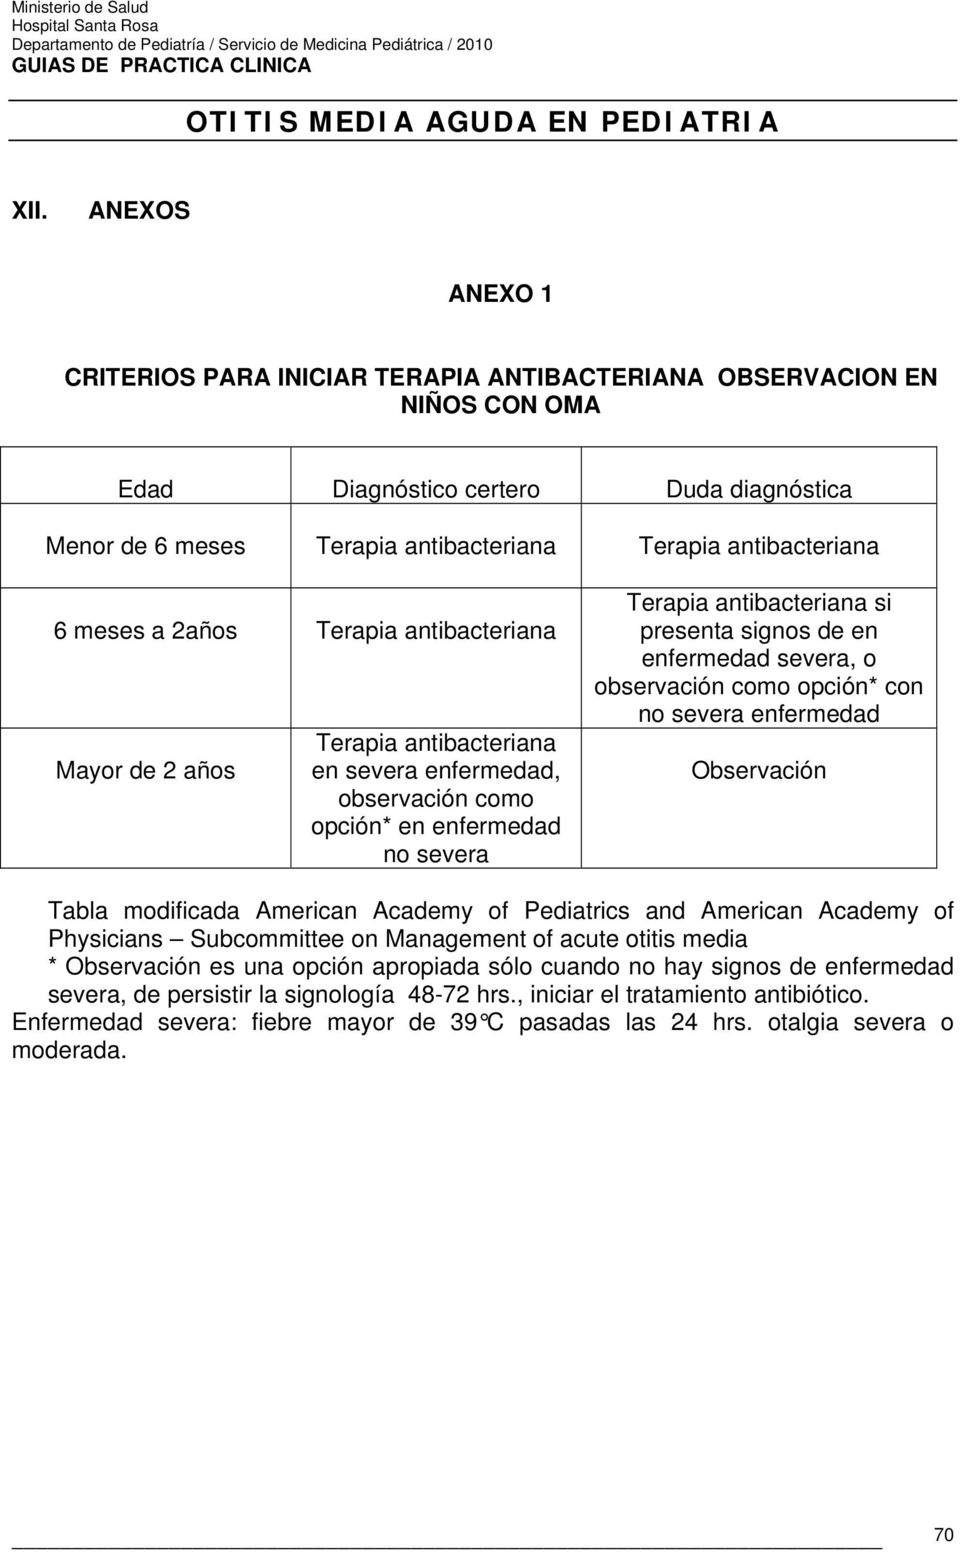 enfermedad severa, o observación como opción* con no severa enfermedad Observación Tabla modificada American Academy of Pediatrics and American Academy of Physicians Subcommittee on Management of